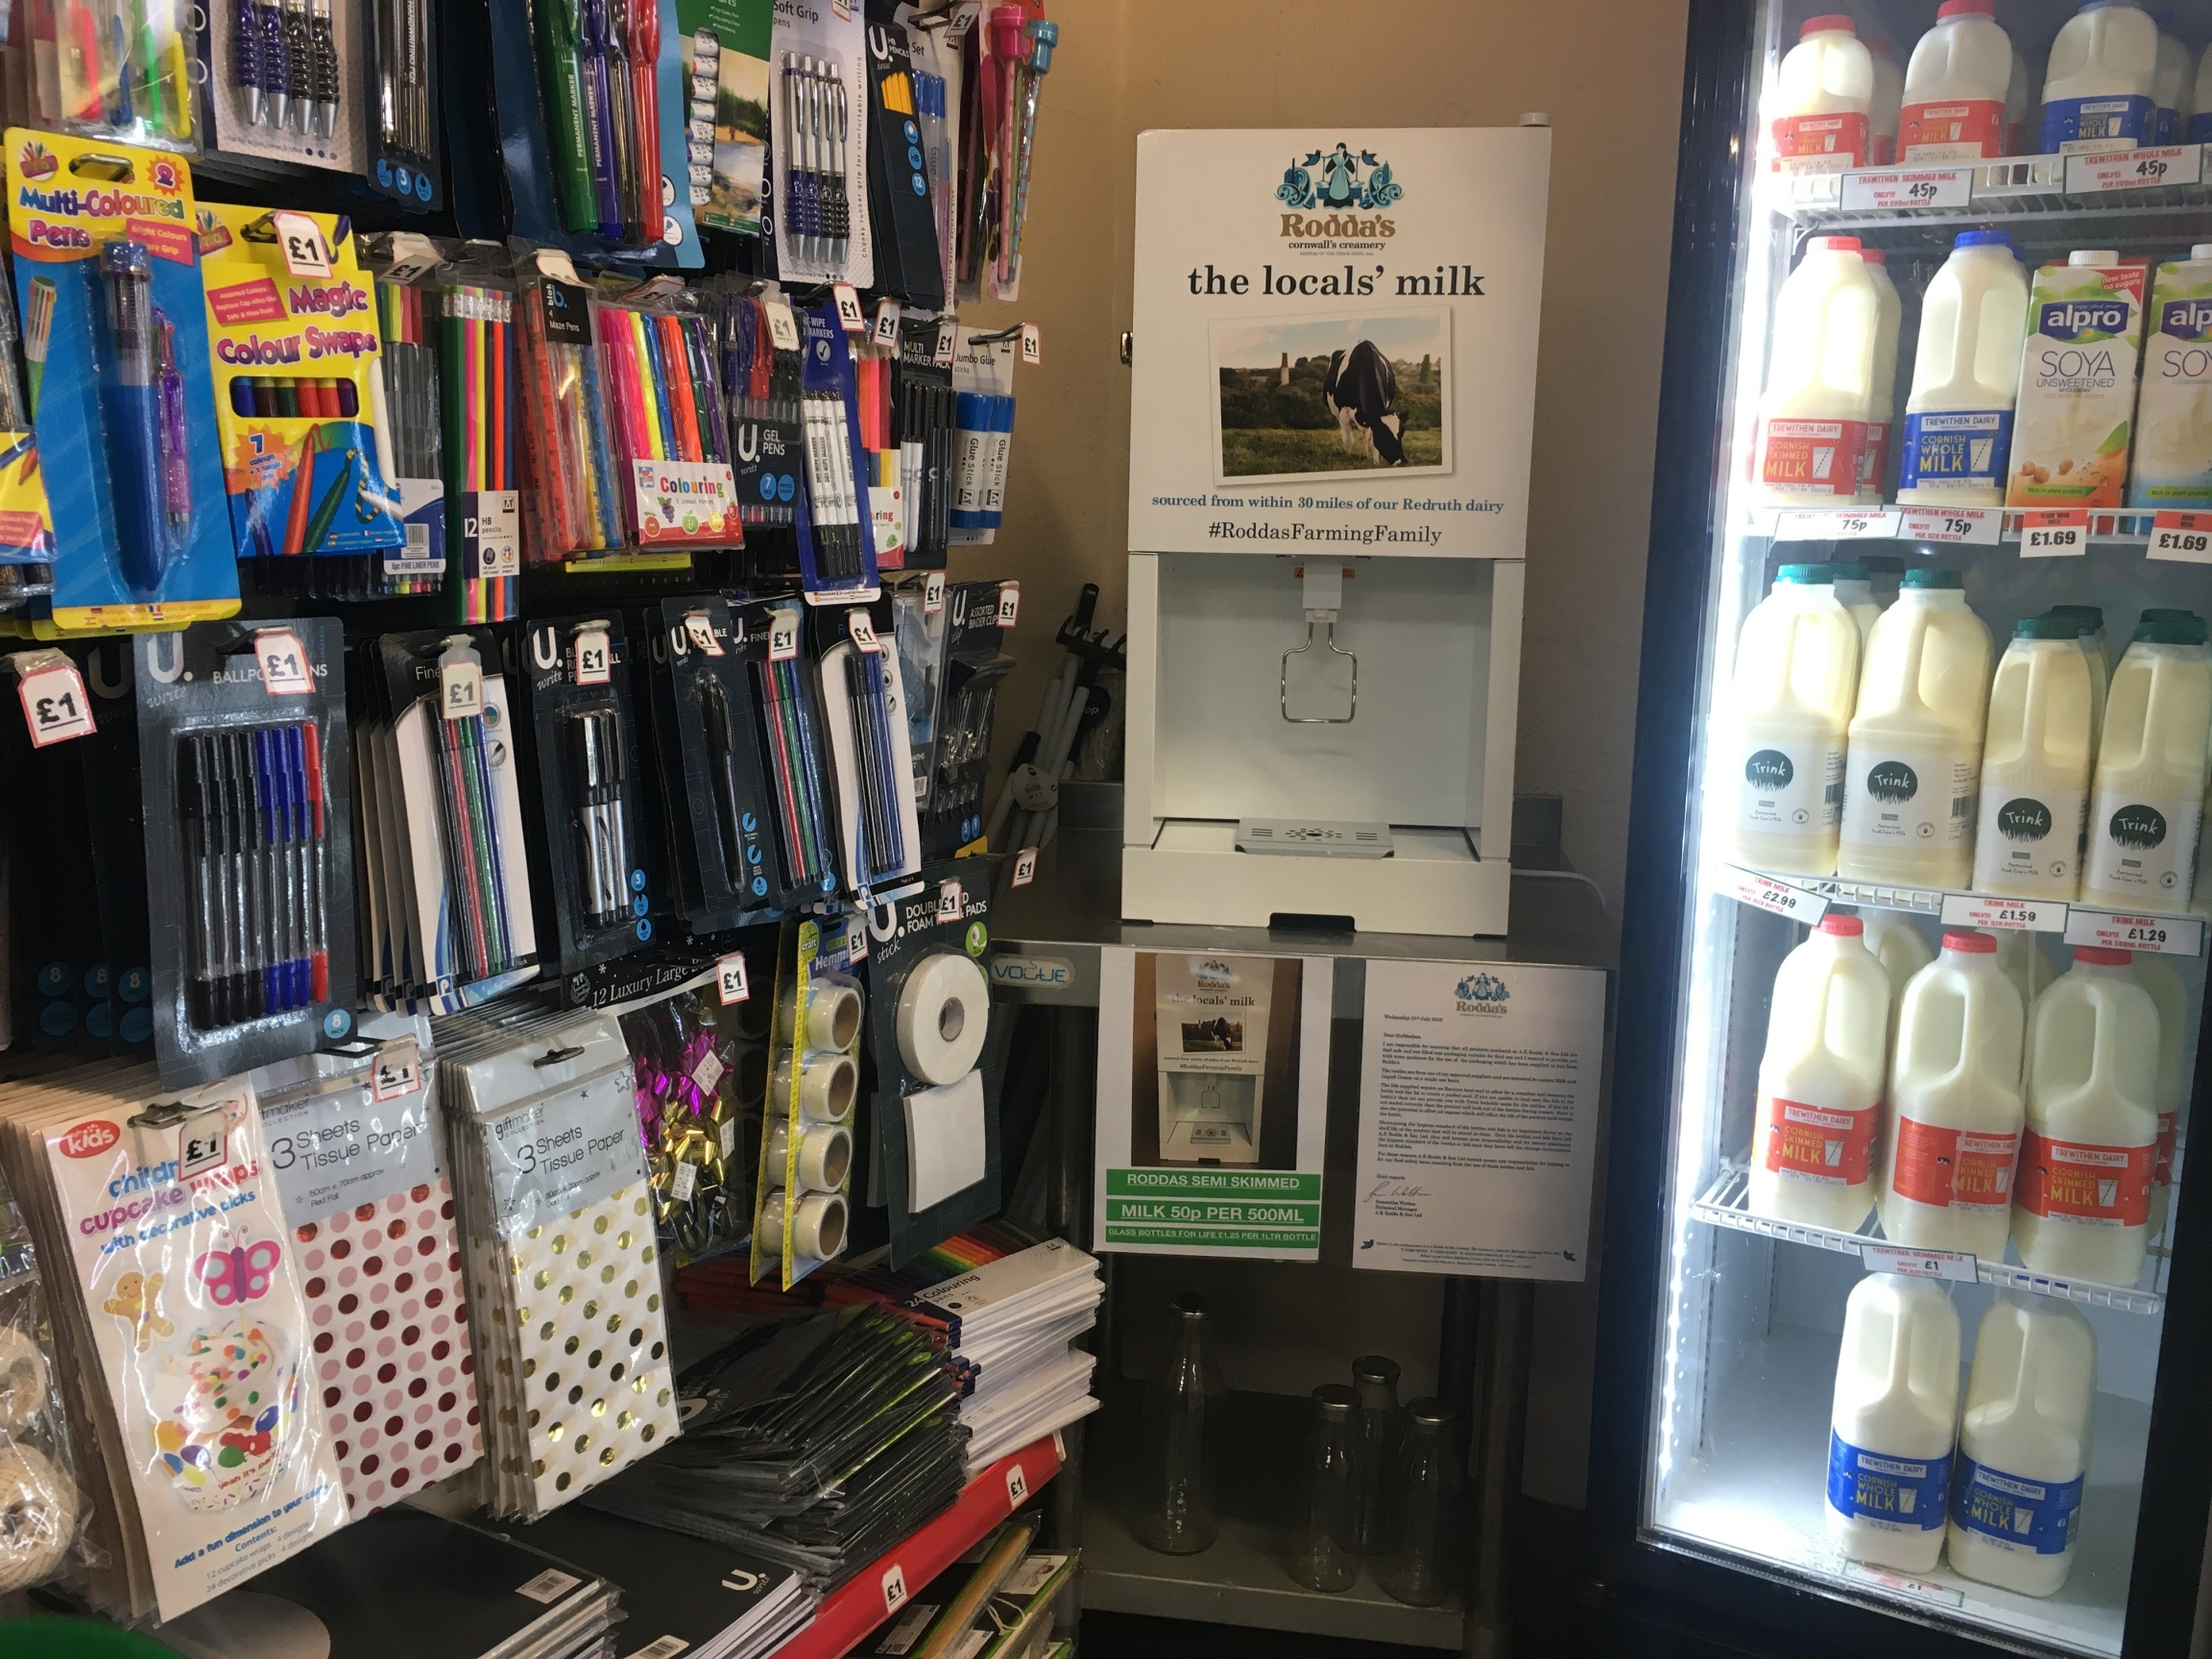 In a bid to offer customers a plastic-free option, Thornes has just set up a milk refill machine stocked with local milk. Customers can pick up glass bottles and bring them back.